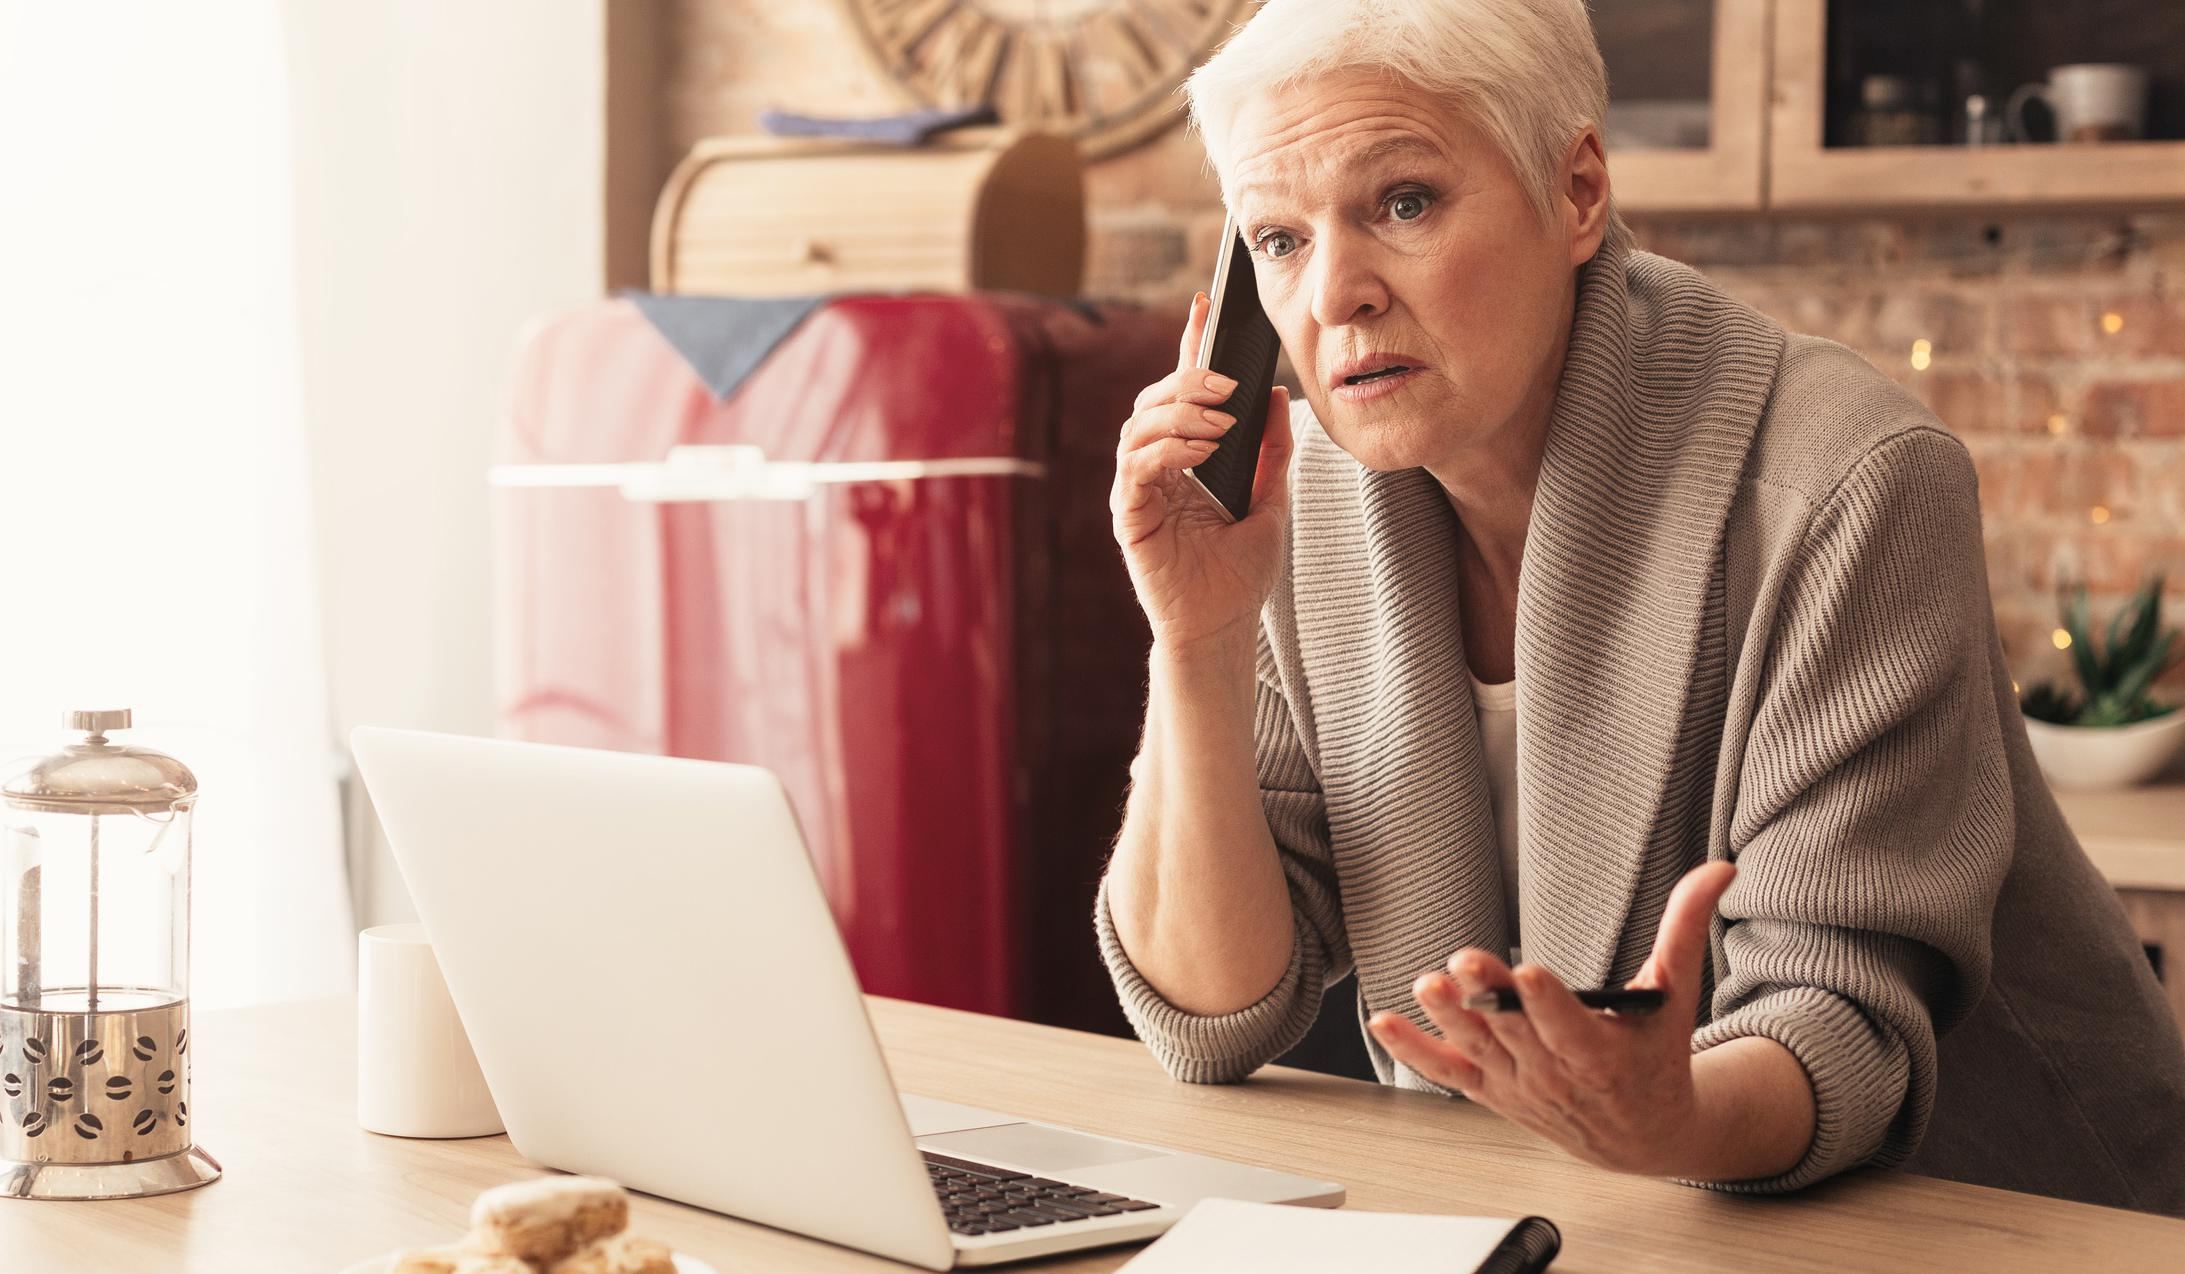 Concerned elderly woman talking on cellphone, working on laptop in kitchen